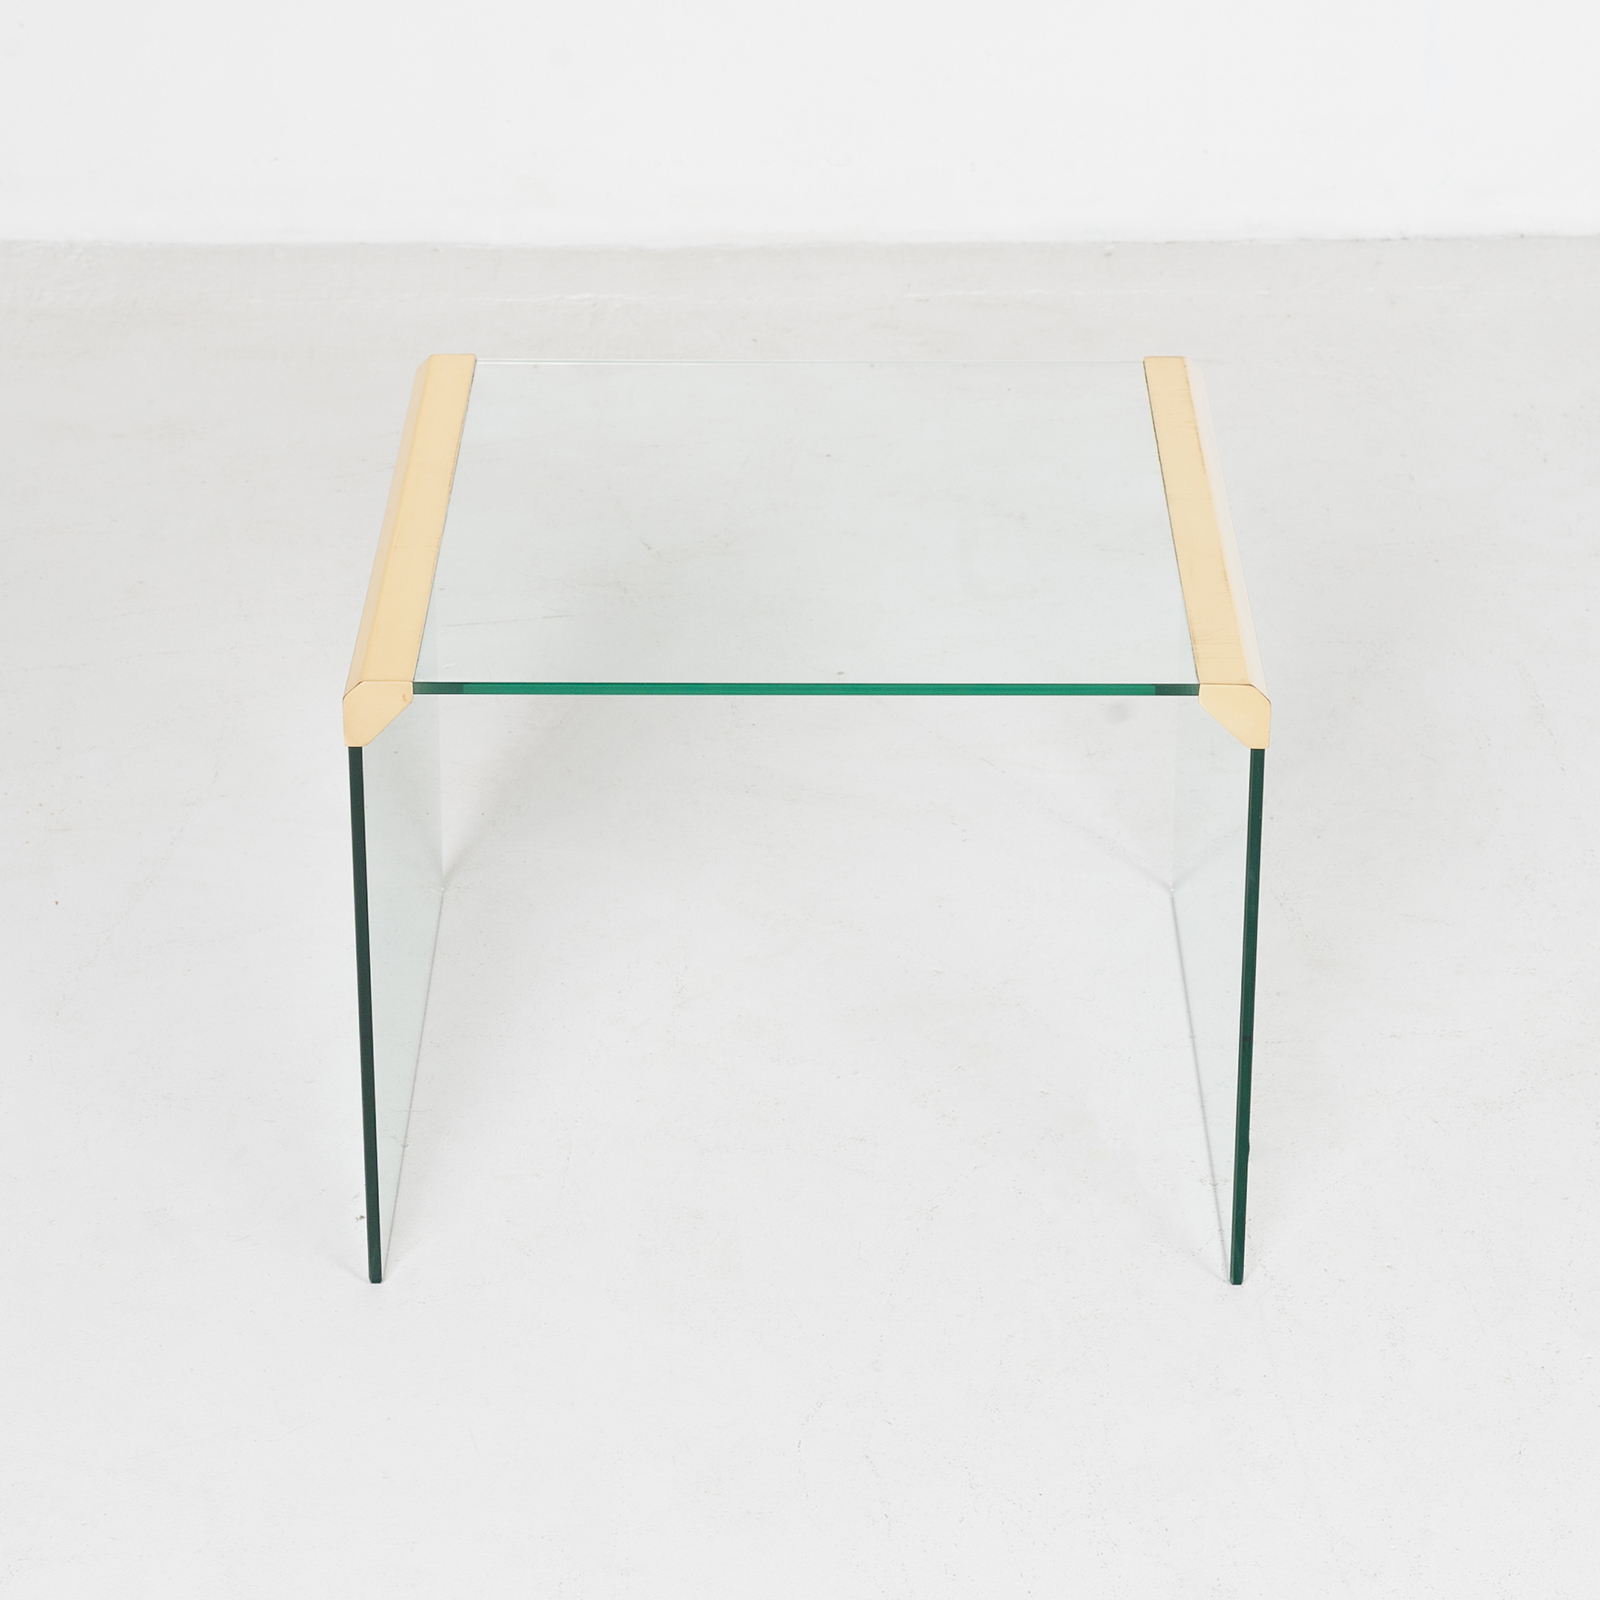 Waterfall Side Table By Pace In Glass And Anodised Brass, 1970s, United States899